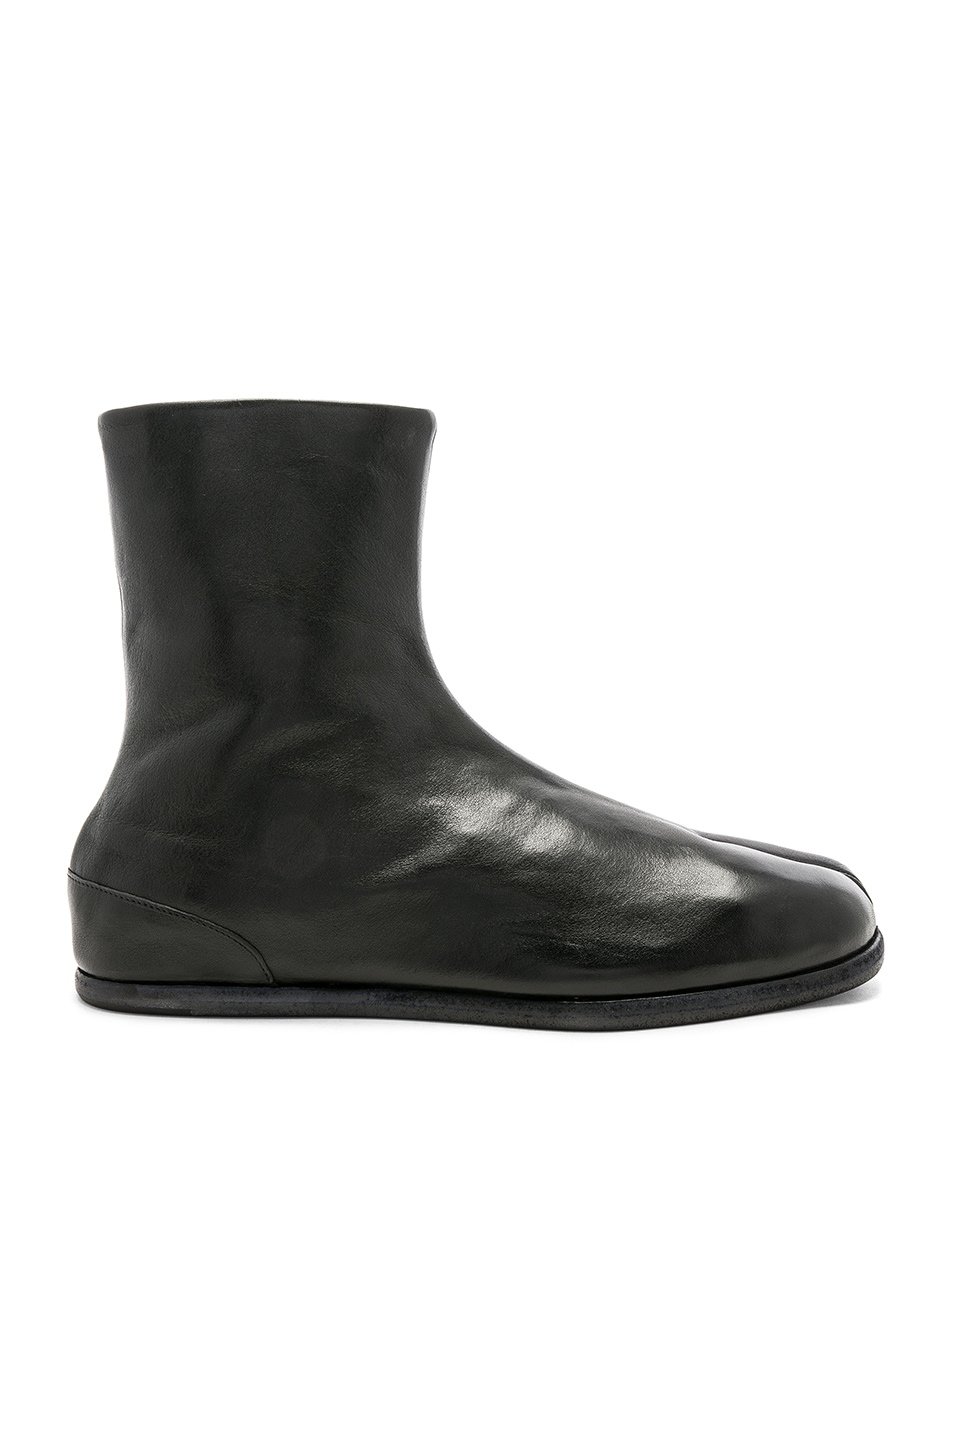 Maison Margiela Leather Tabi Boots in .